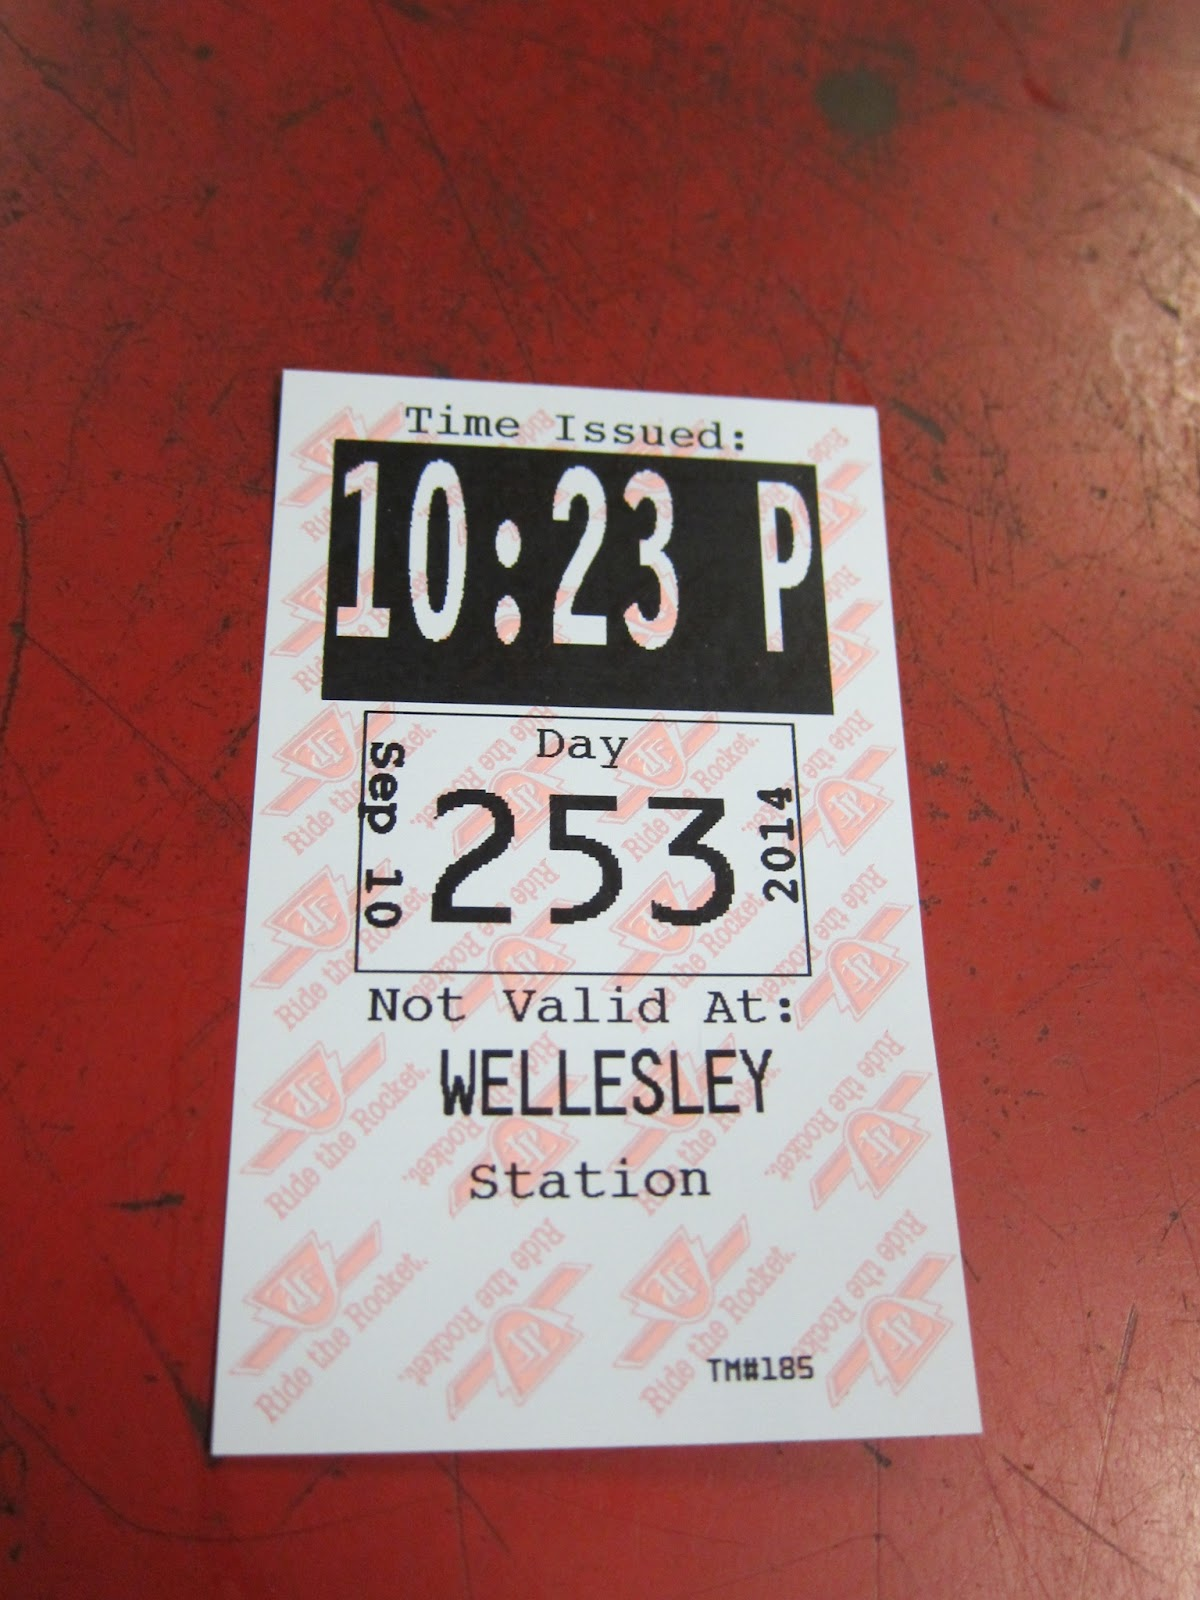 Wellesley station transfer